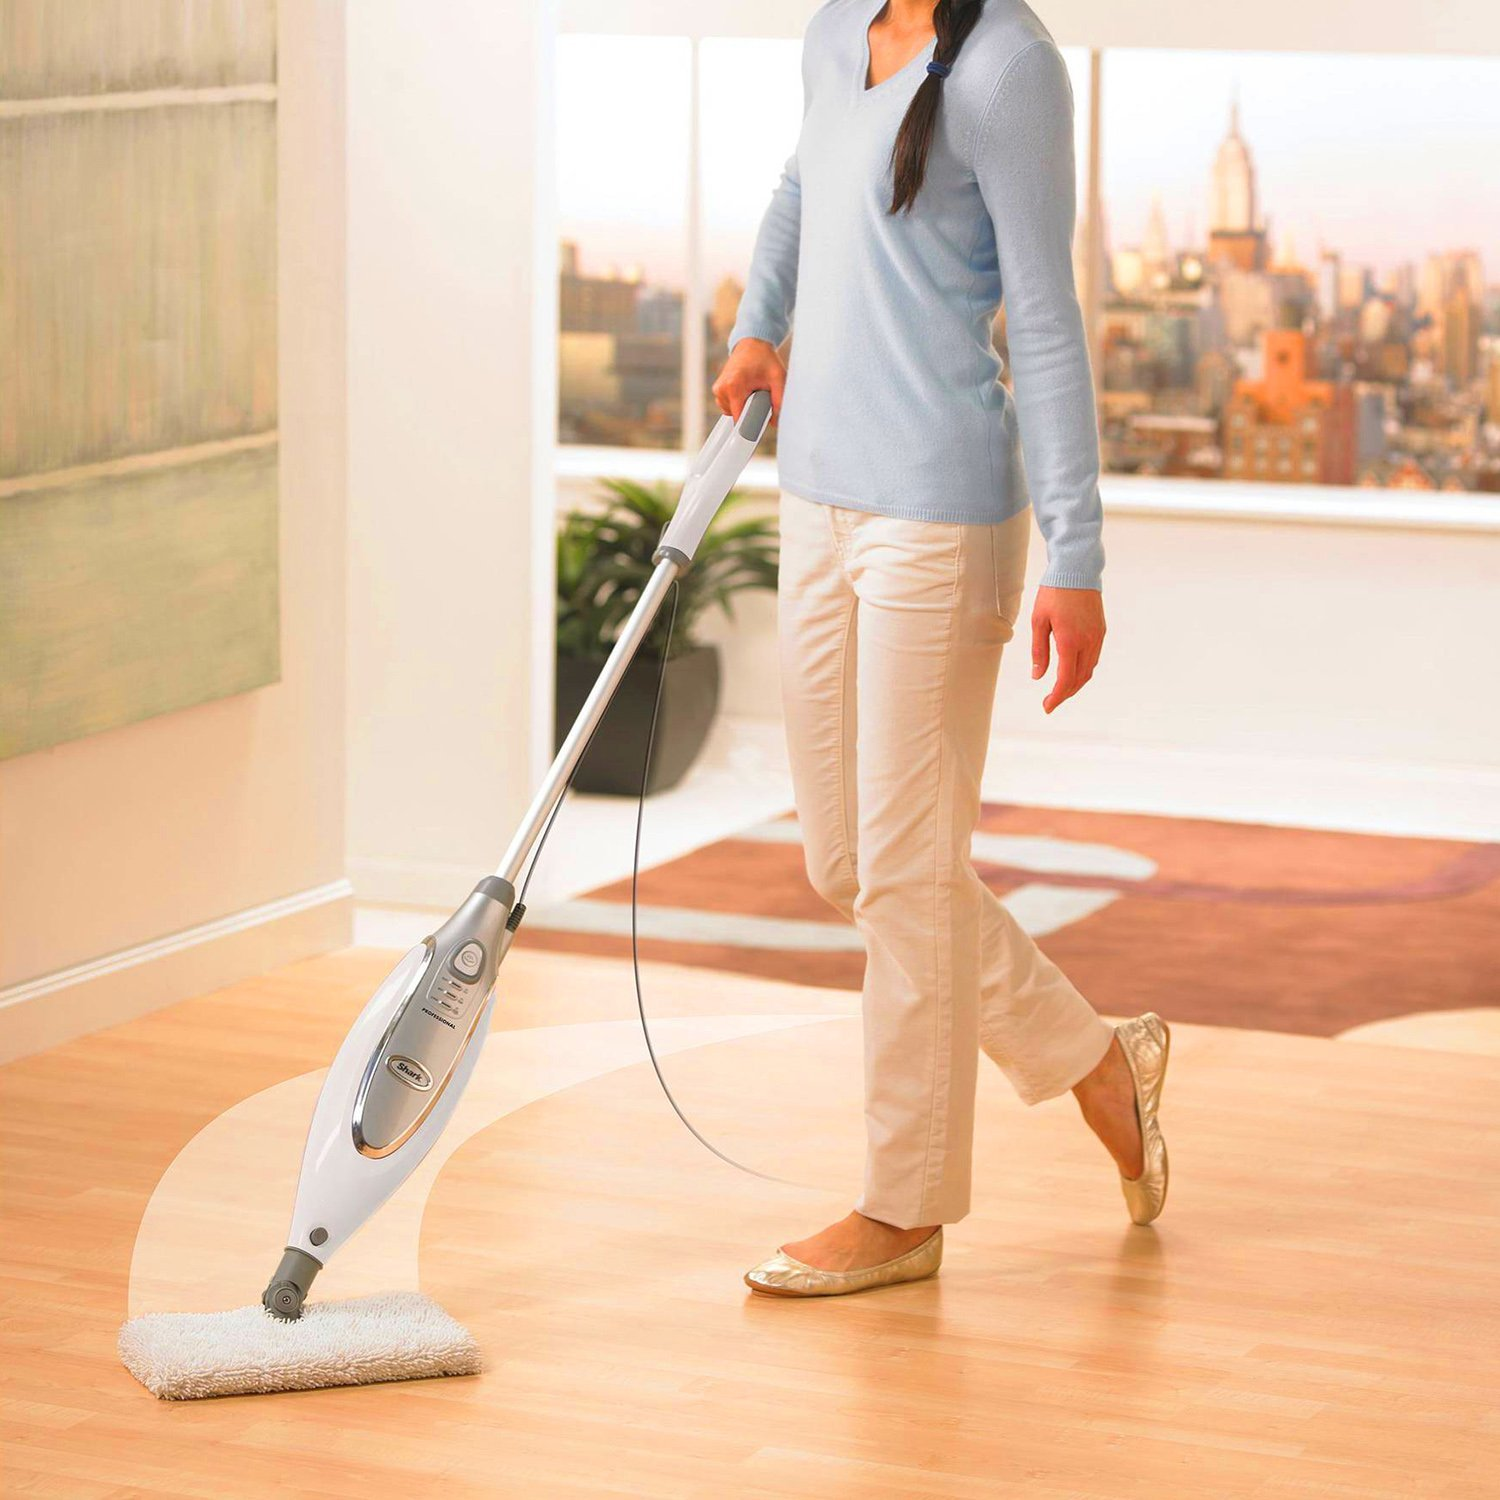 Shark Professional Steam Pocket Mop No Chemicals